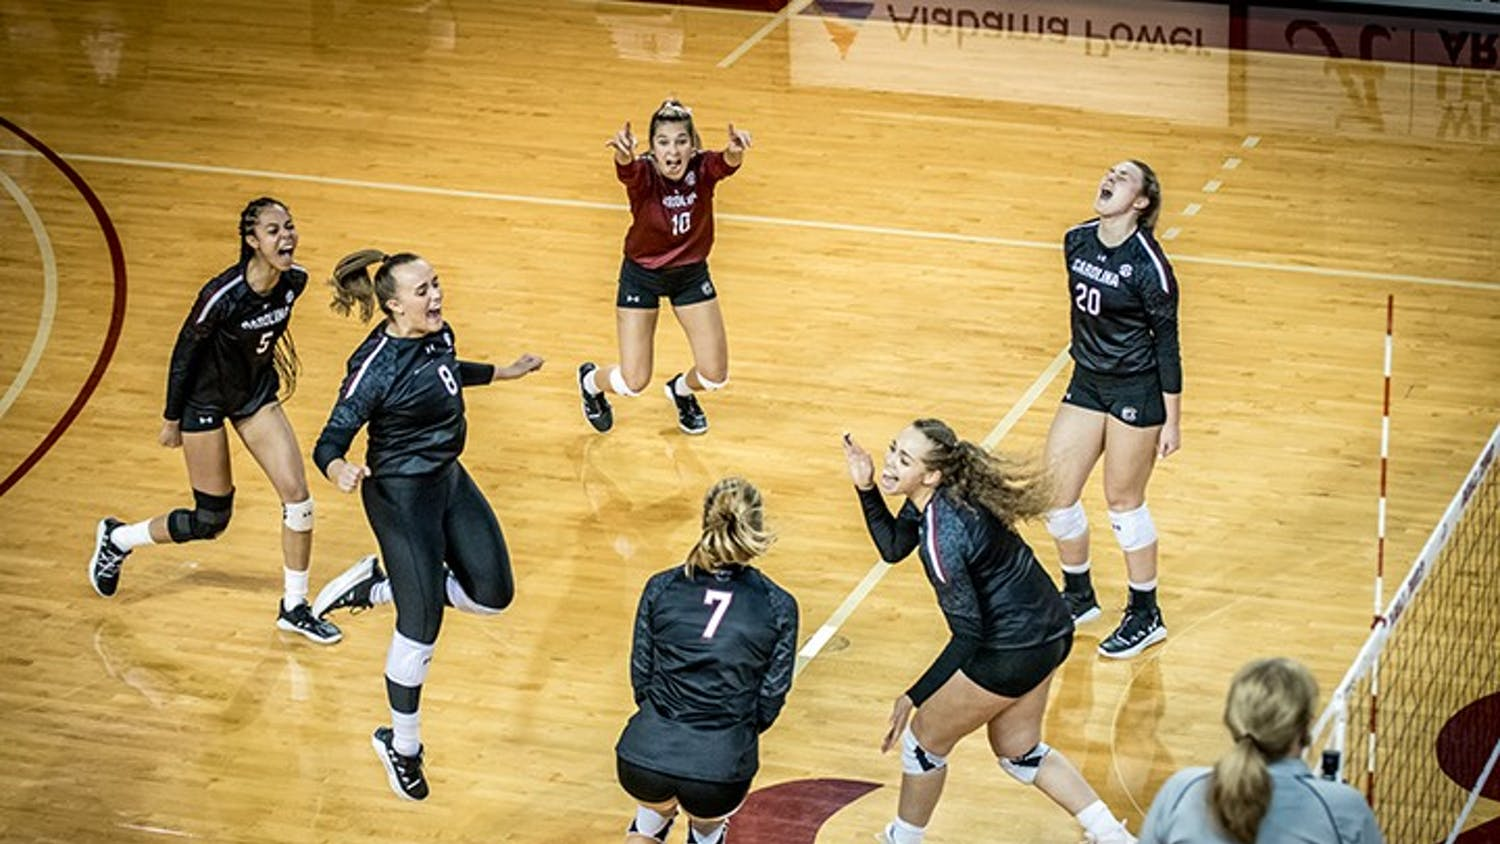 Members of the volleyball team celebrate a point. South Carolina came out with a 3-2 victory at Alabama Saturday afternoon.